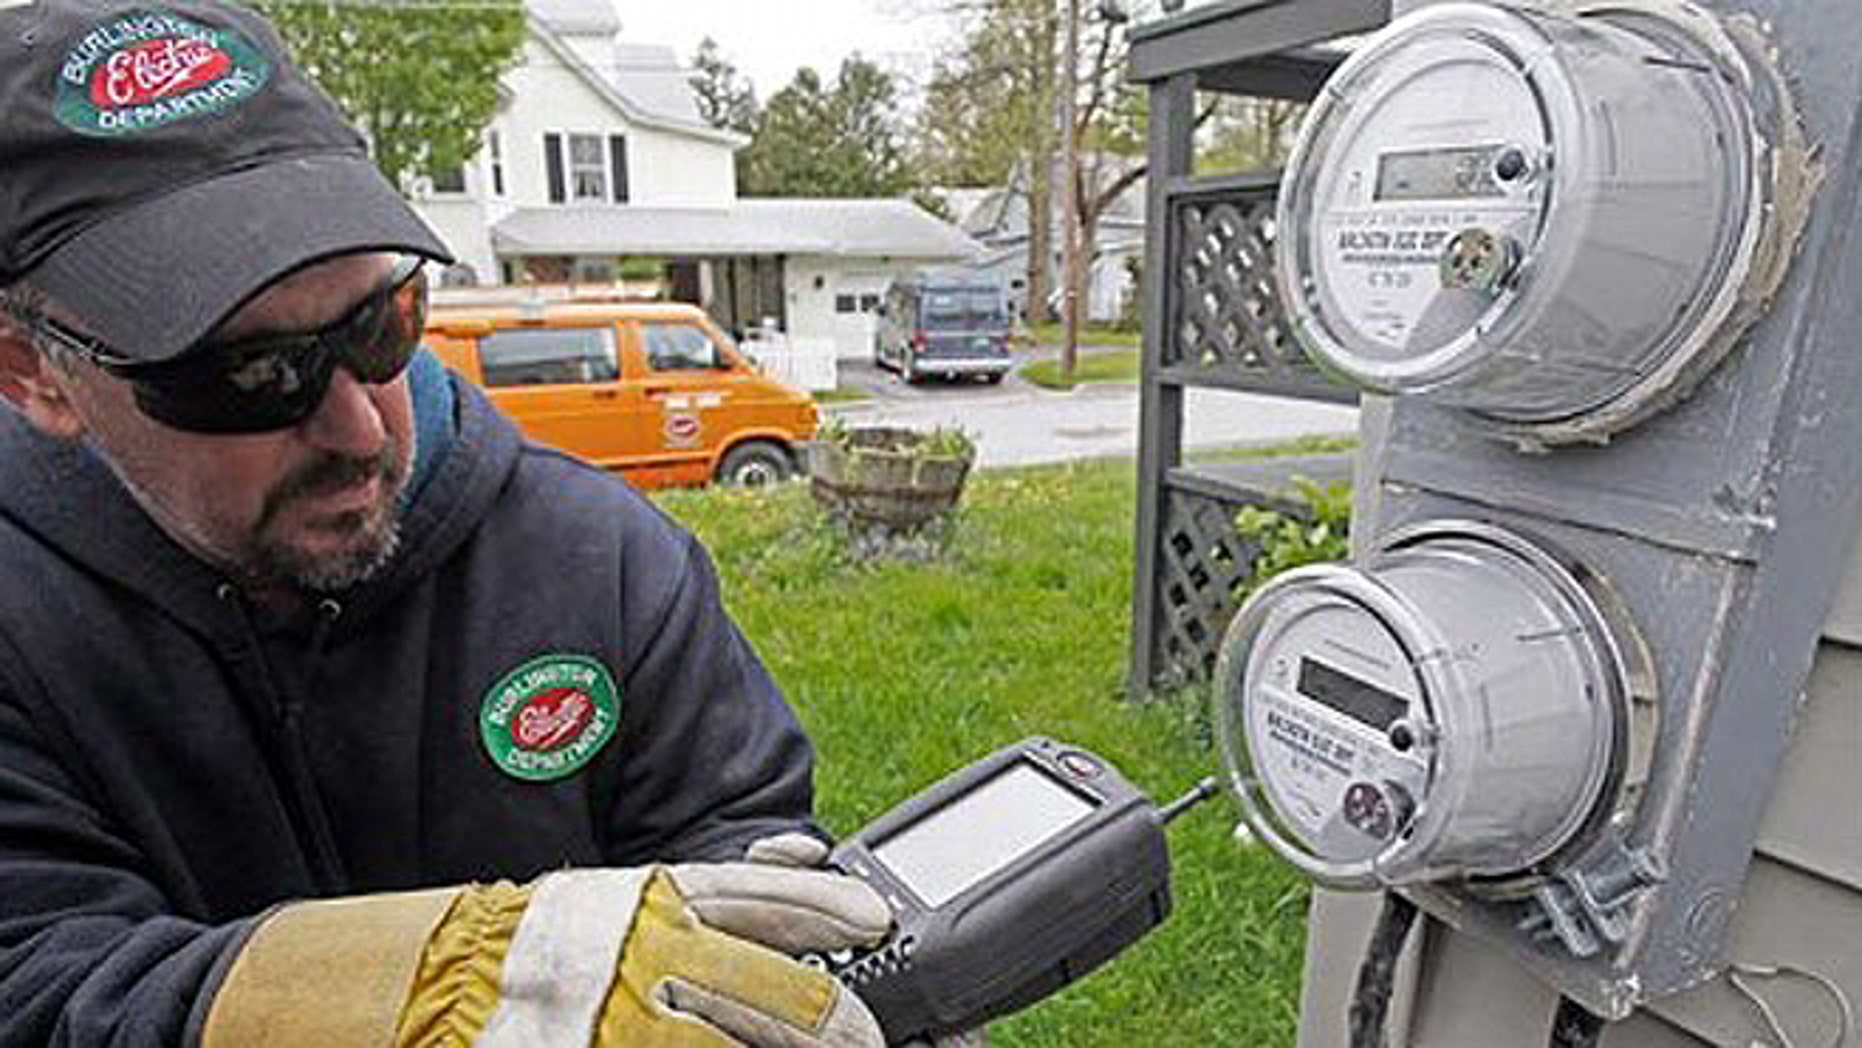 Is your home's energy meter spying on you? | Fox News